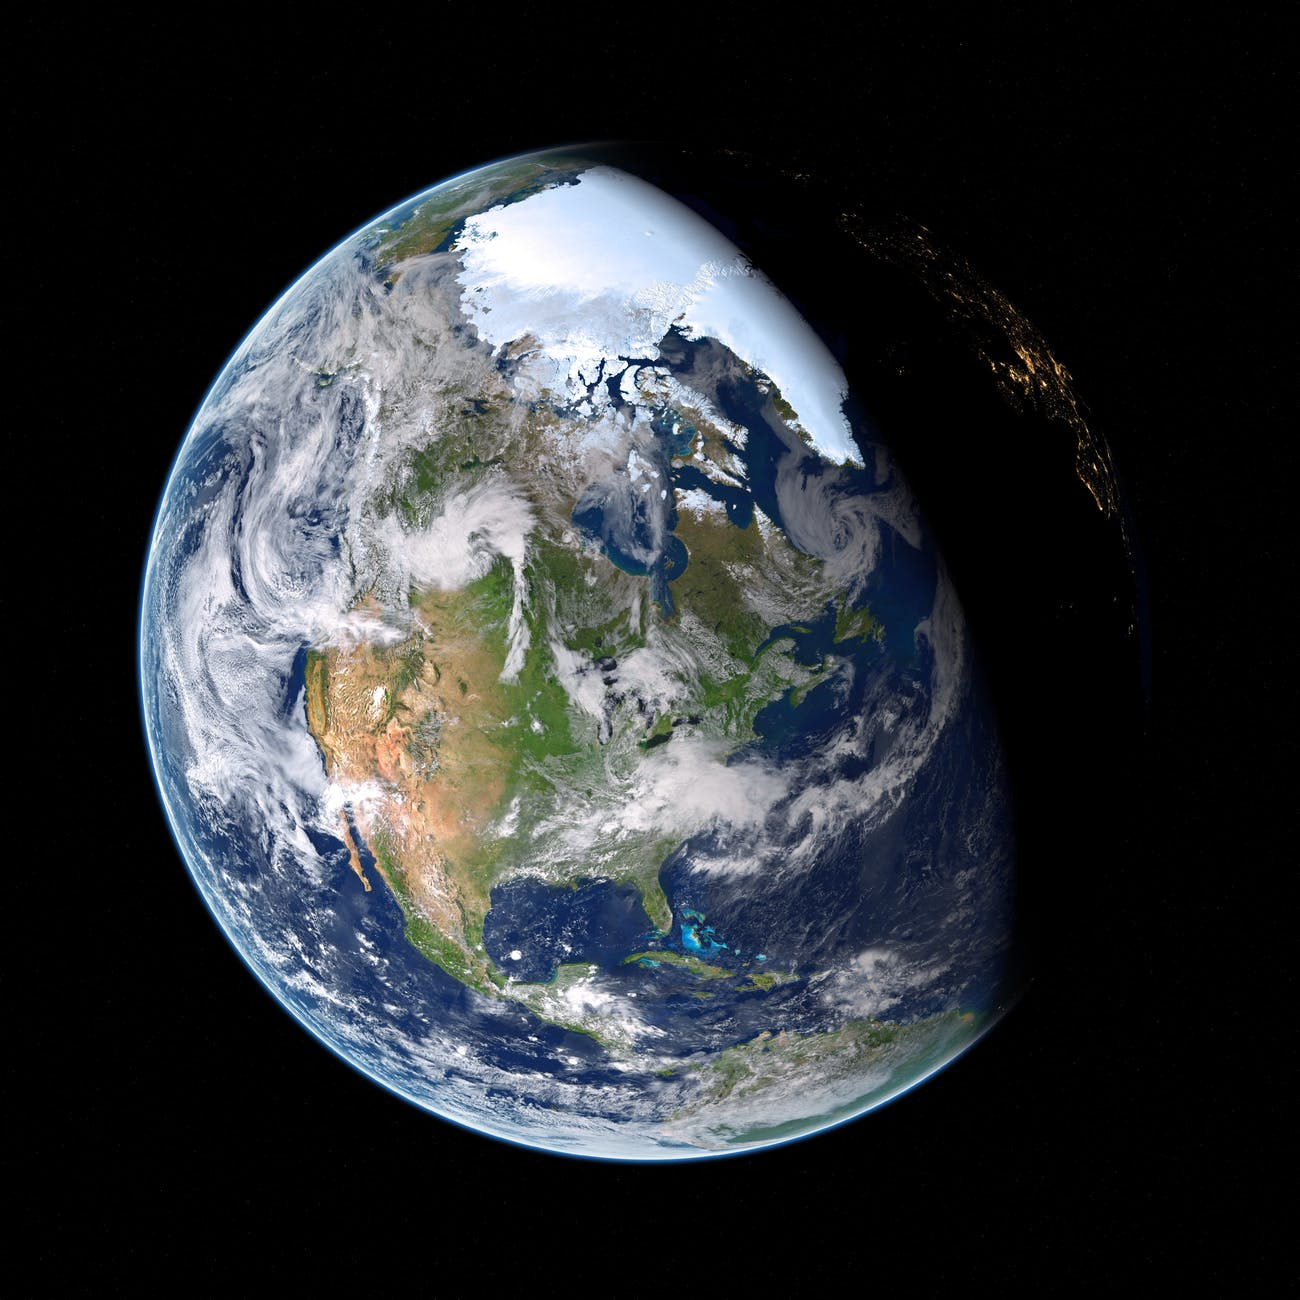 Planet earth is pictured on a black background